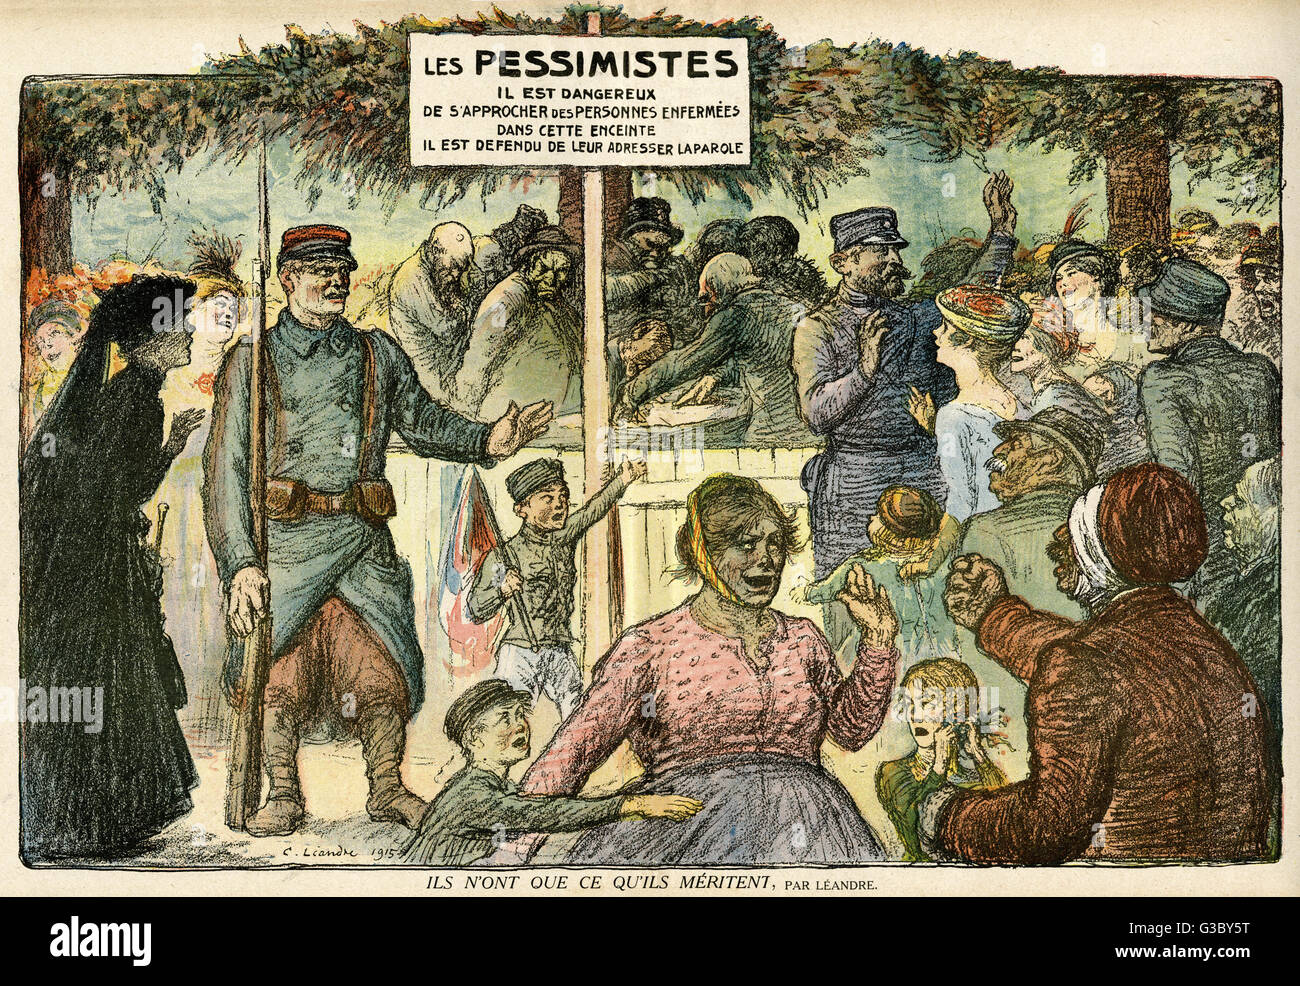 Cartoon, They get what they deserve, showing a group of pessimists, as if in a lunatic asylum, with a sign warning - Stock Image